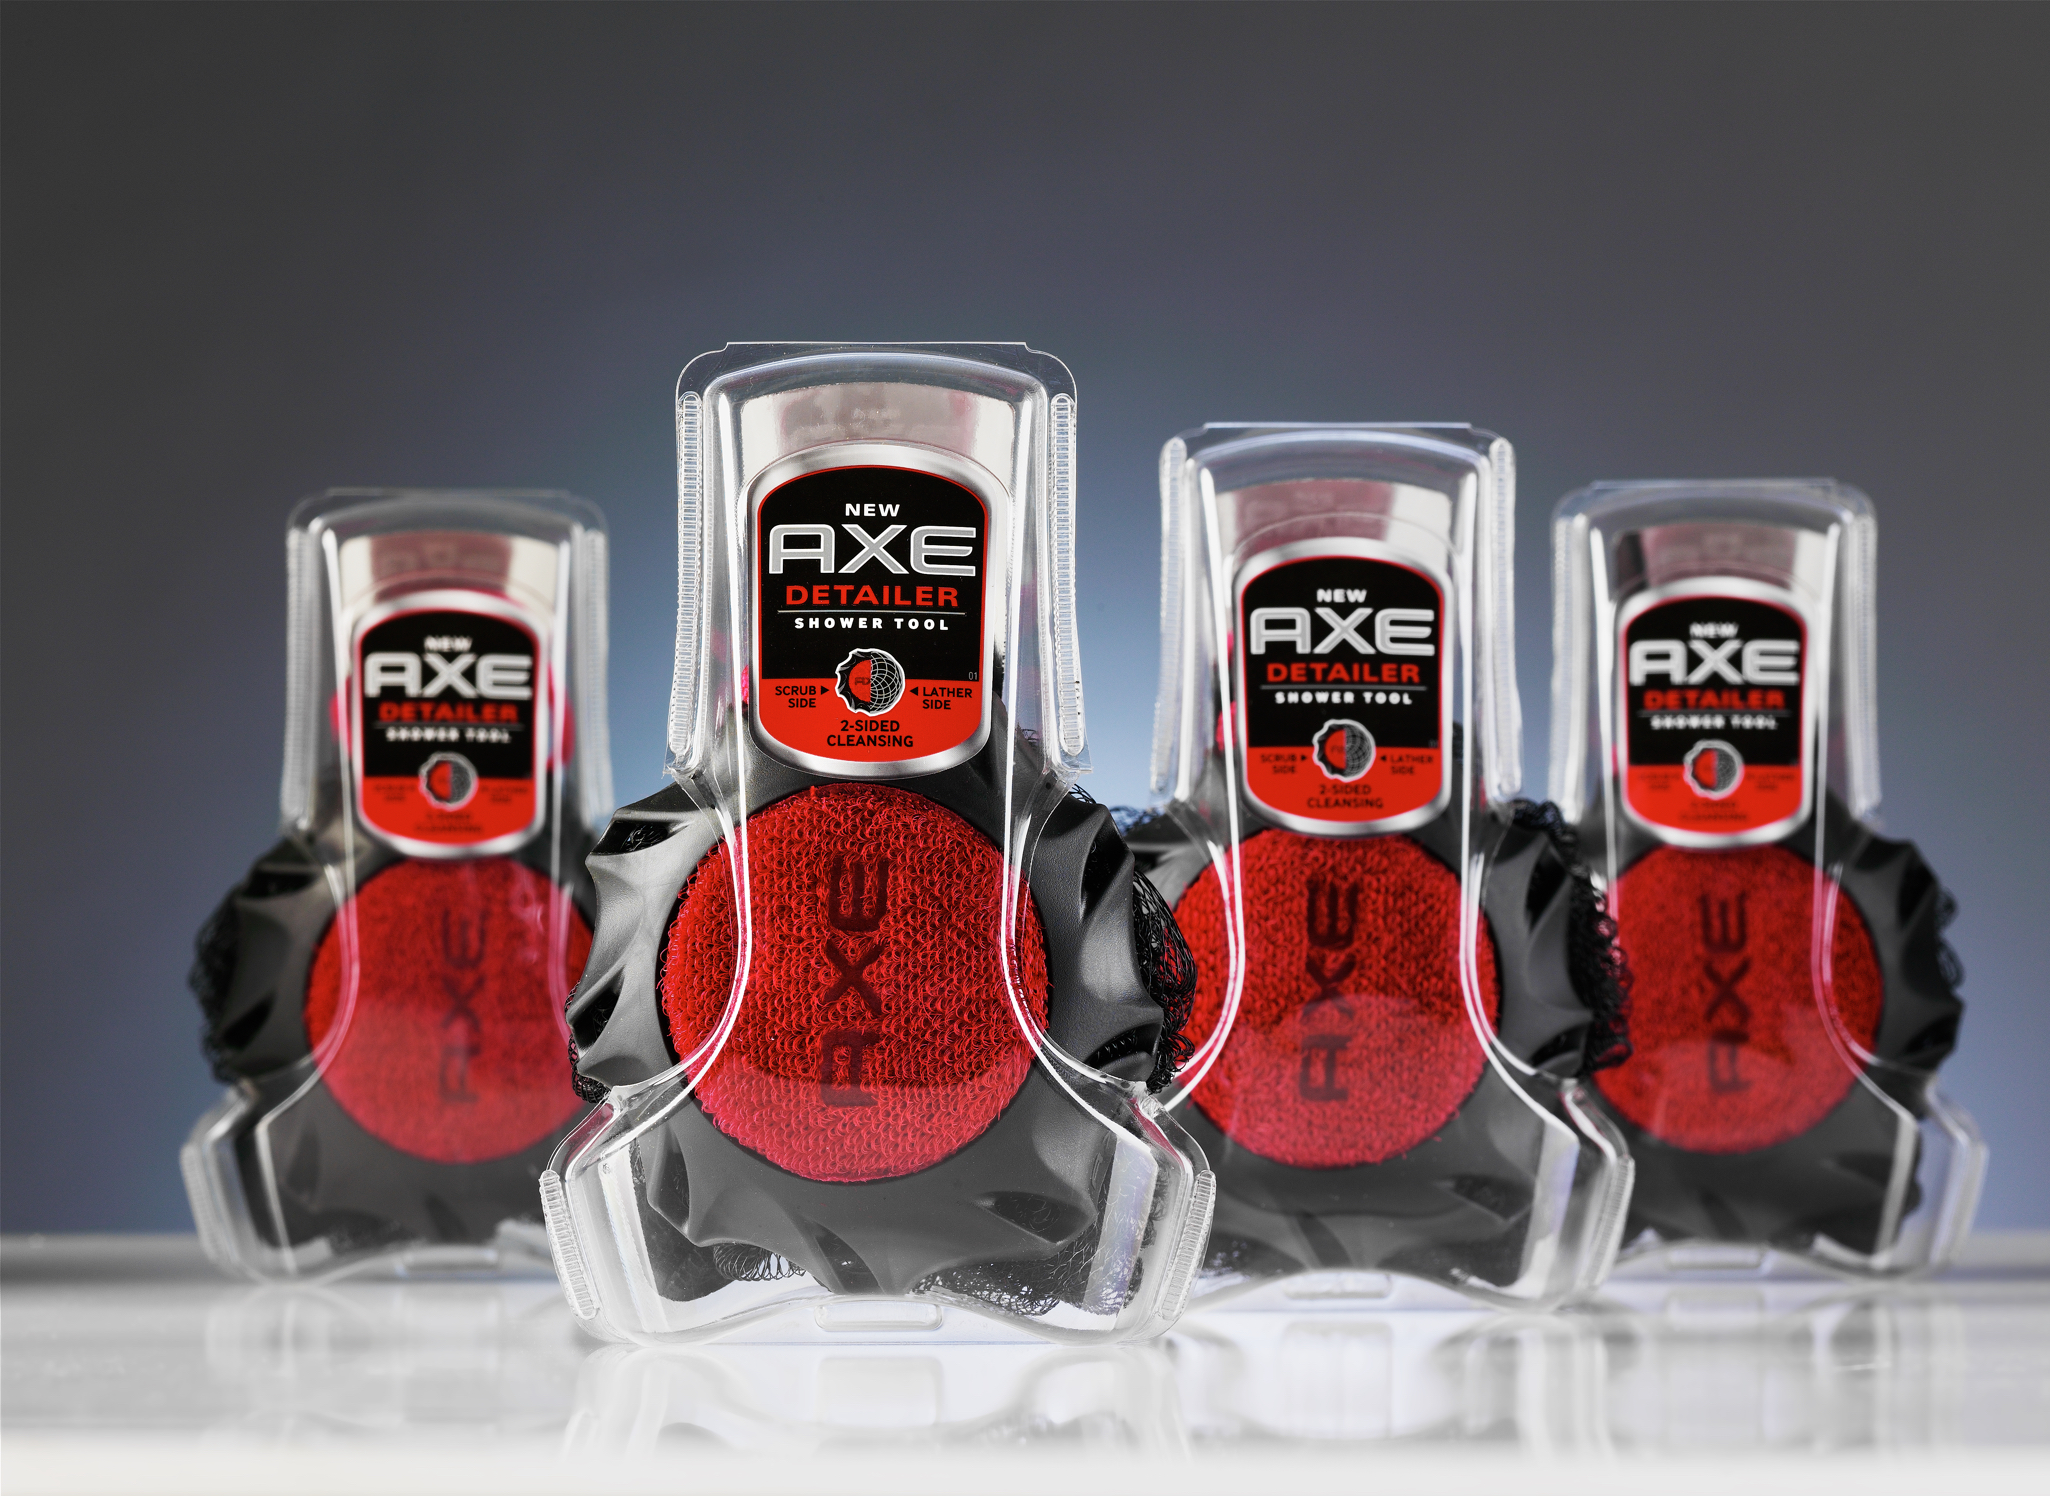 Axe detailer packaging